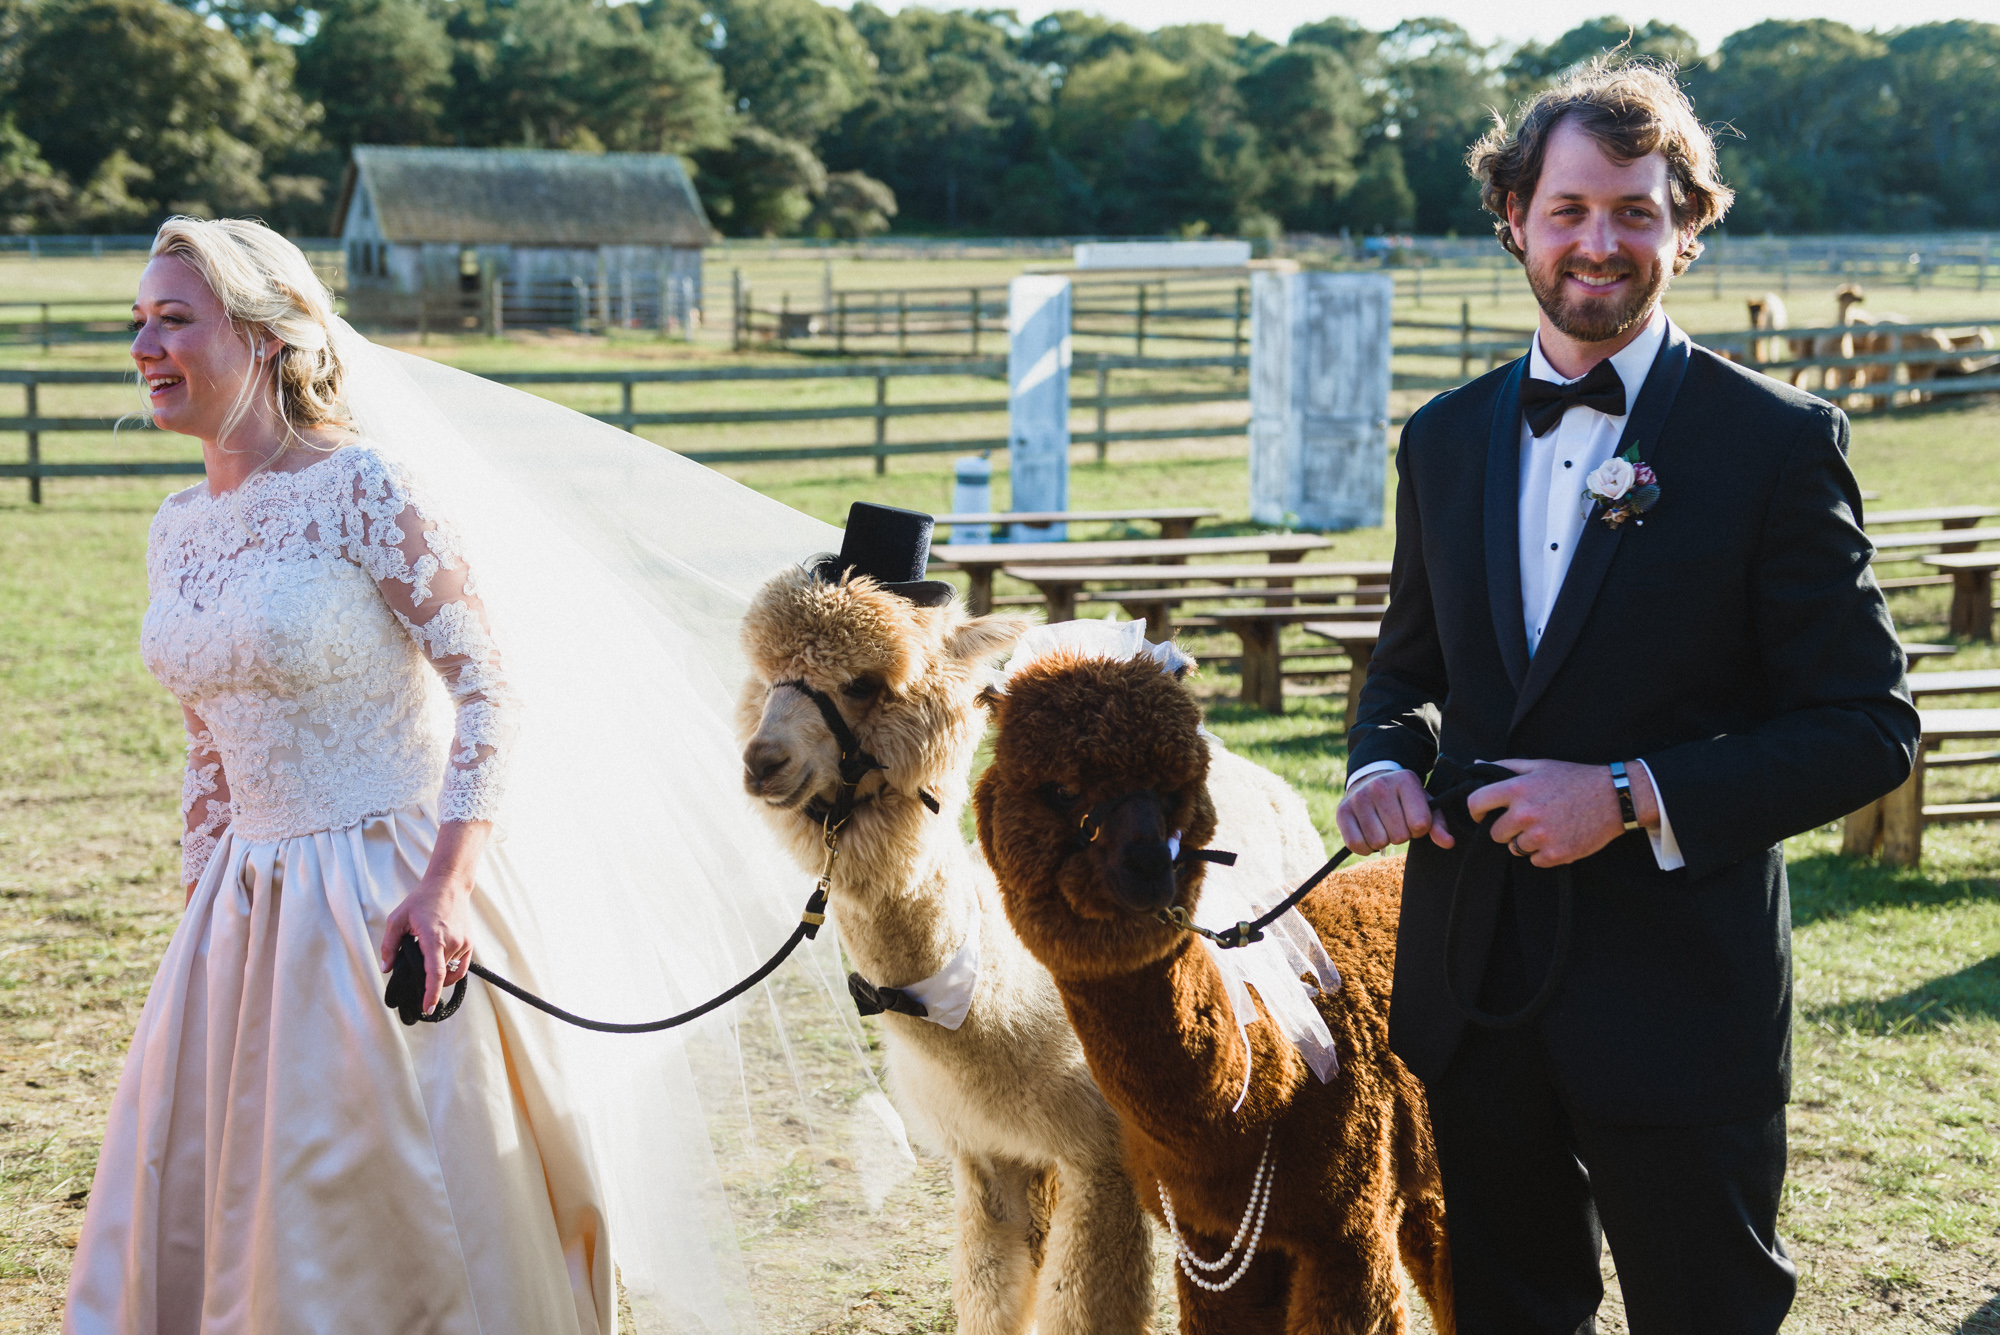 A bride and groom escort alpaca at Island Alpaca Company photo by David Welch Photography